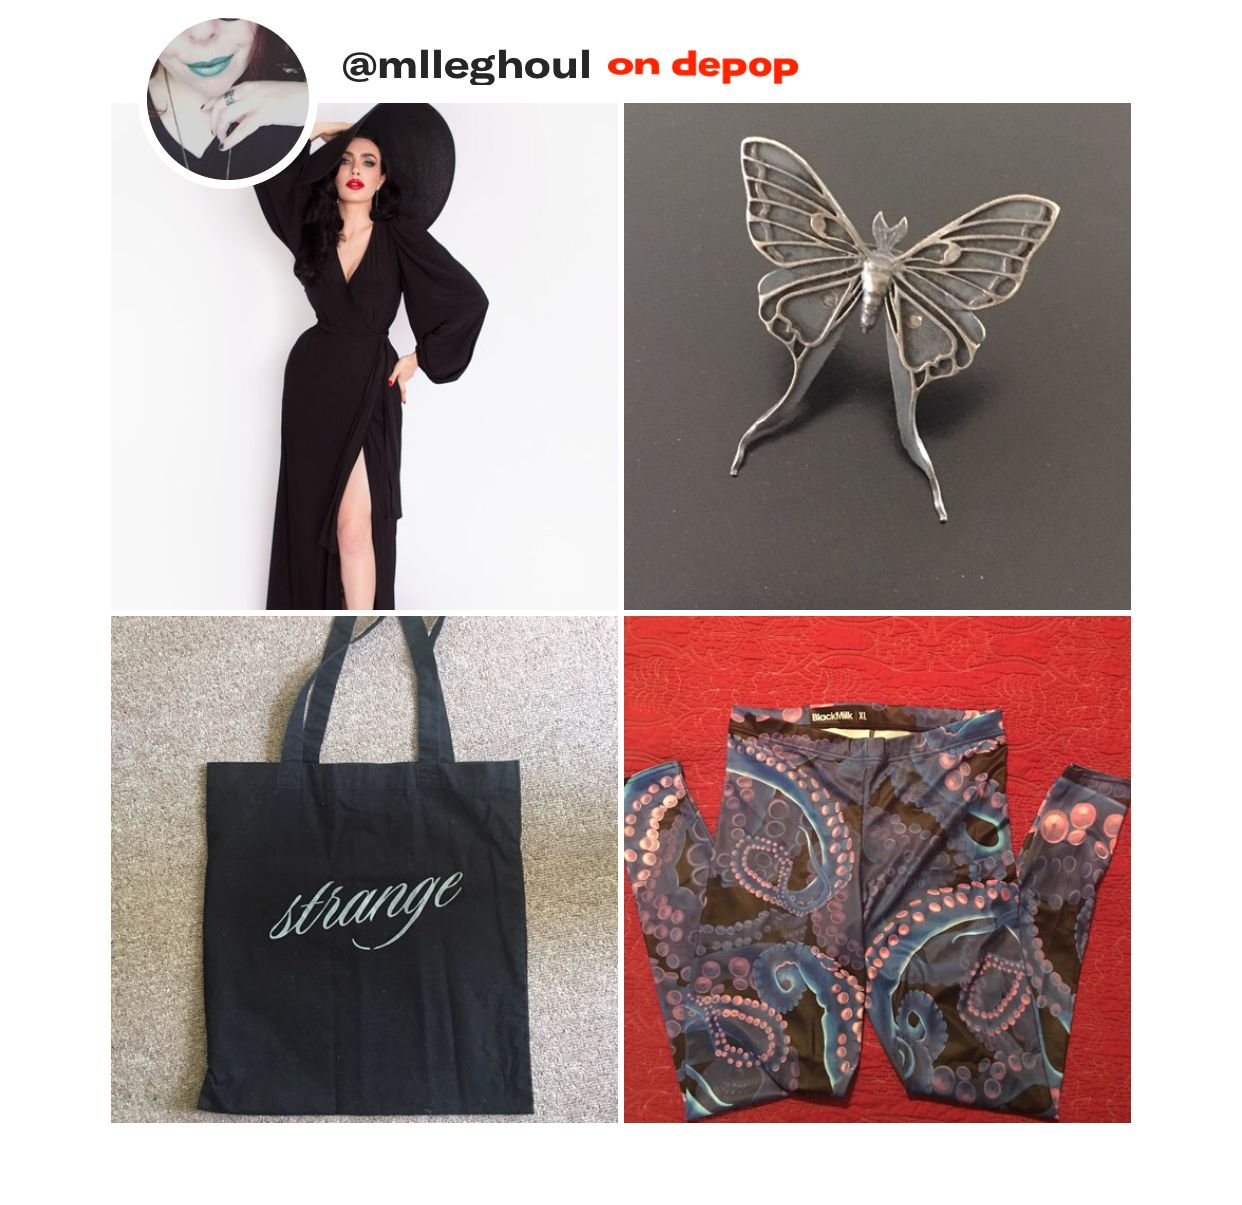 64466d37041e The olde depop shoppe has been updated! Have a peek! But please don't ask  me lots of questions/ask me to hold an item/ask me to lower the price on an  item… ...